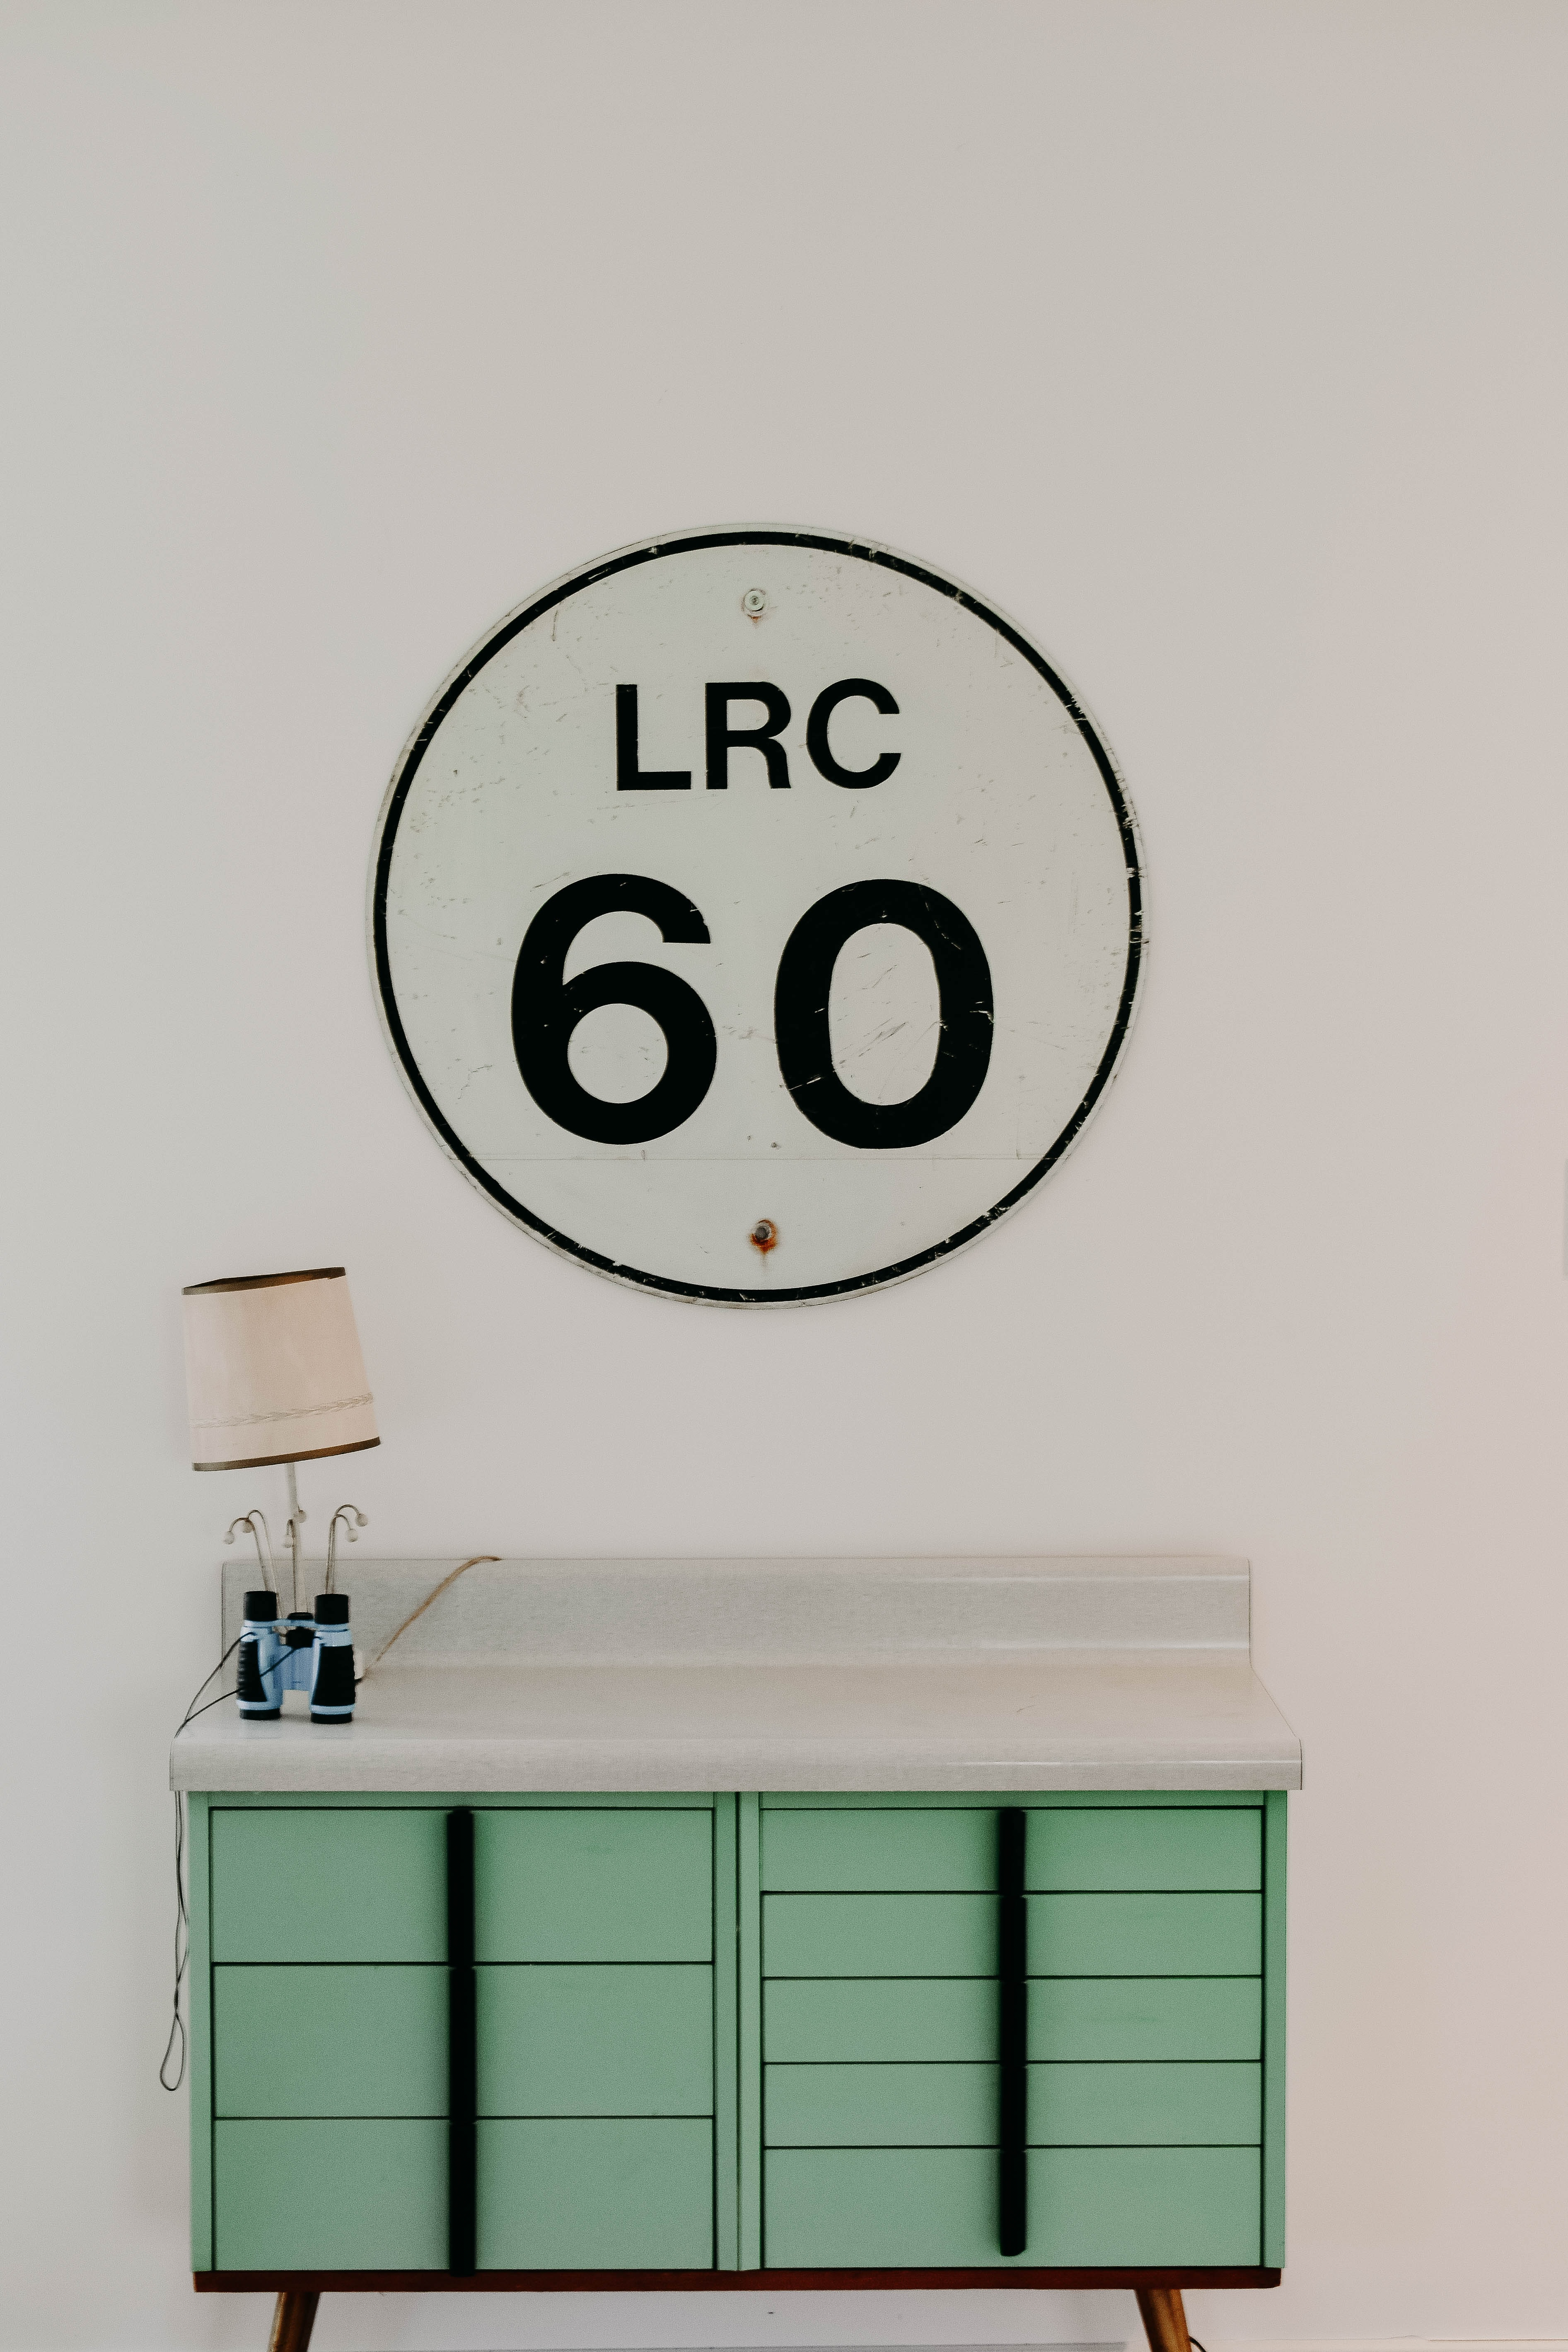 white and green wooden desk with brown lampshade near LRC 60 wall signage